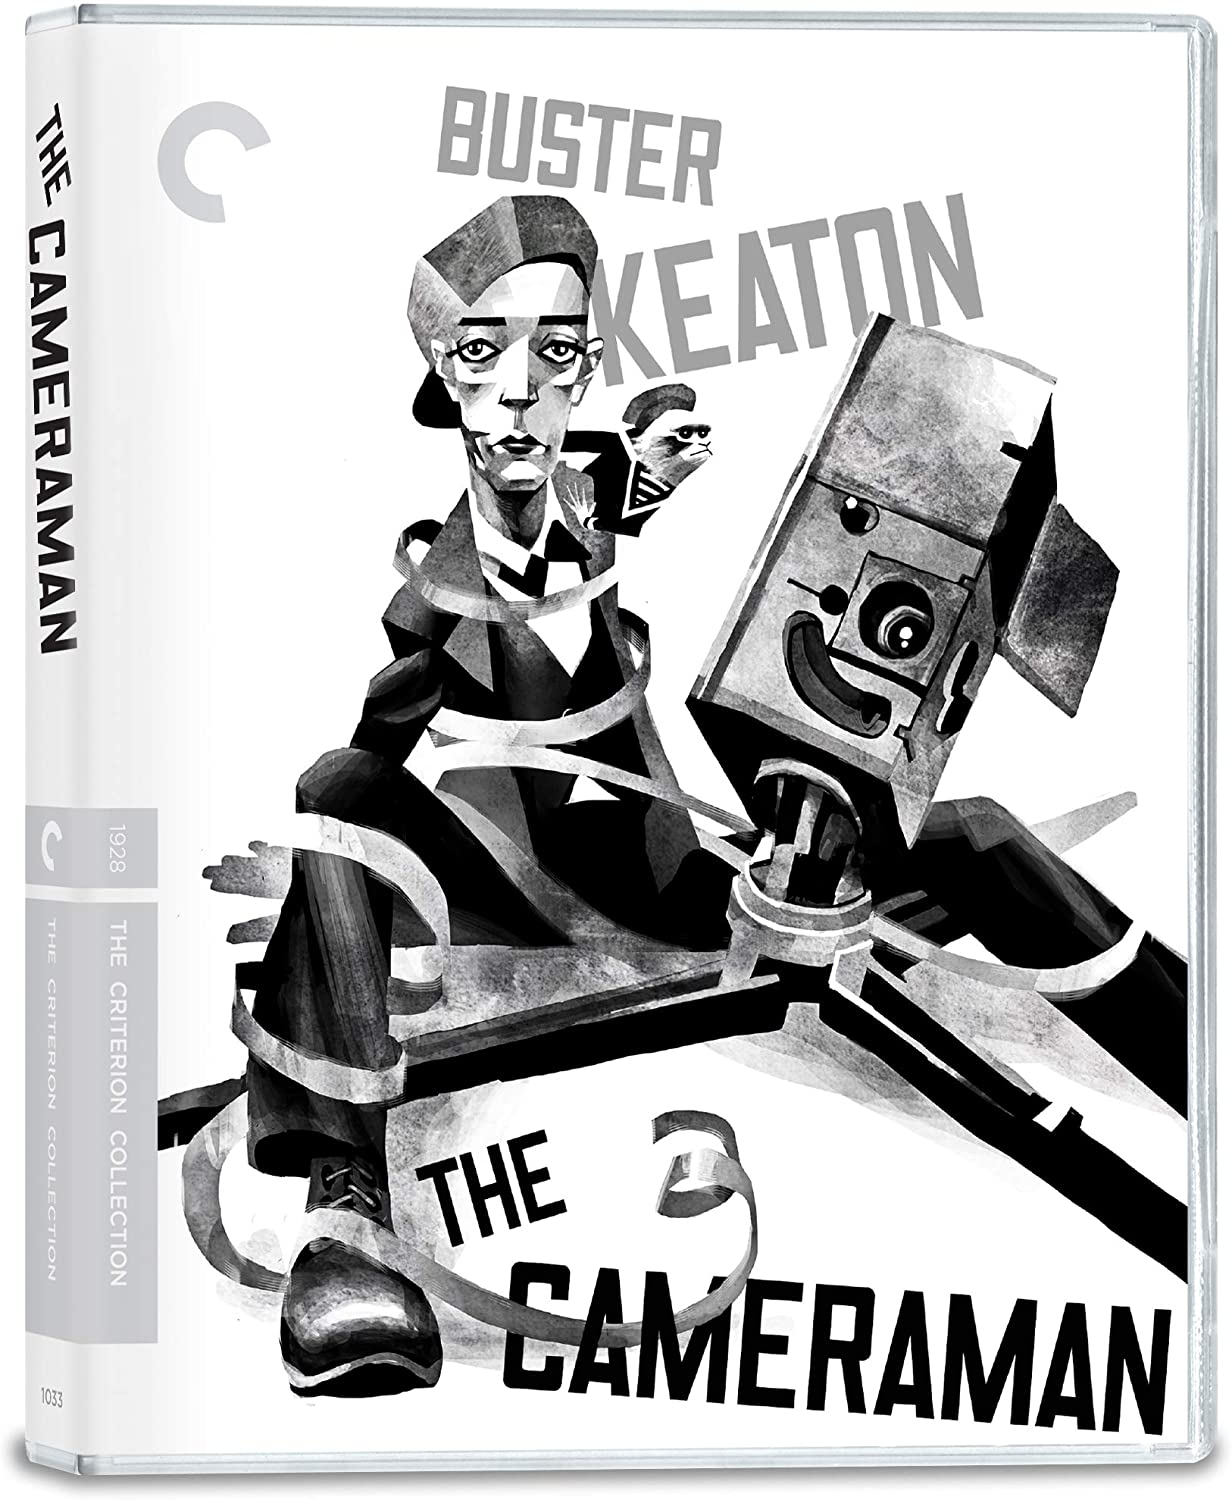 Buy PRE-ORDER The Cameraman (Blu-ray)